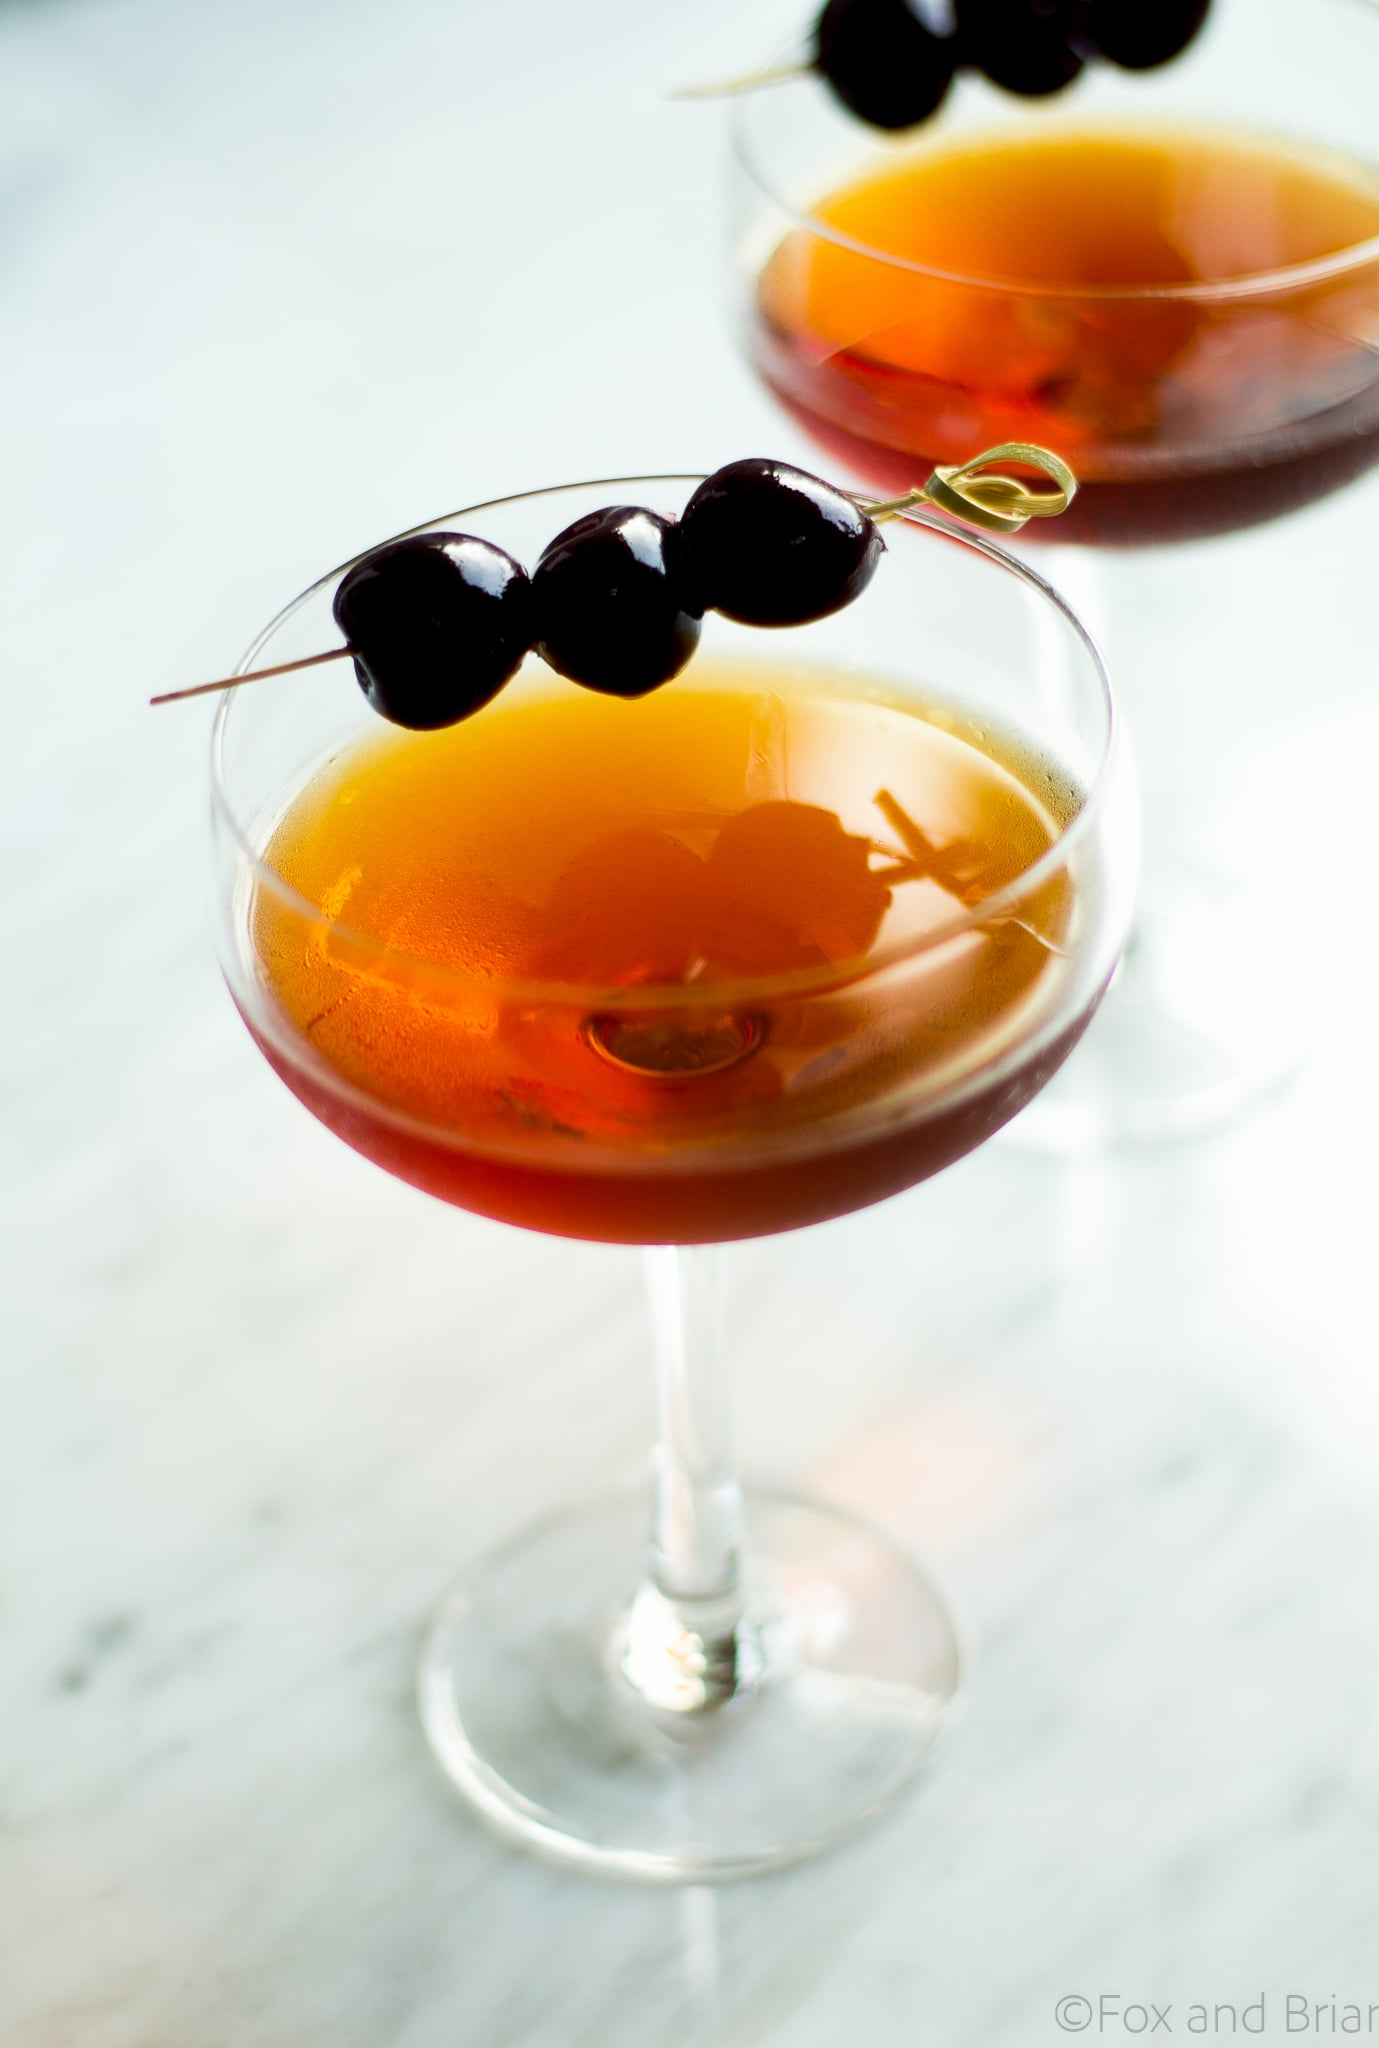 This classic Manhattan cocktail is classic for a reason! Rye whiskey, sweet vermouth plus a secret ingredient that gives a little twist on the original!